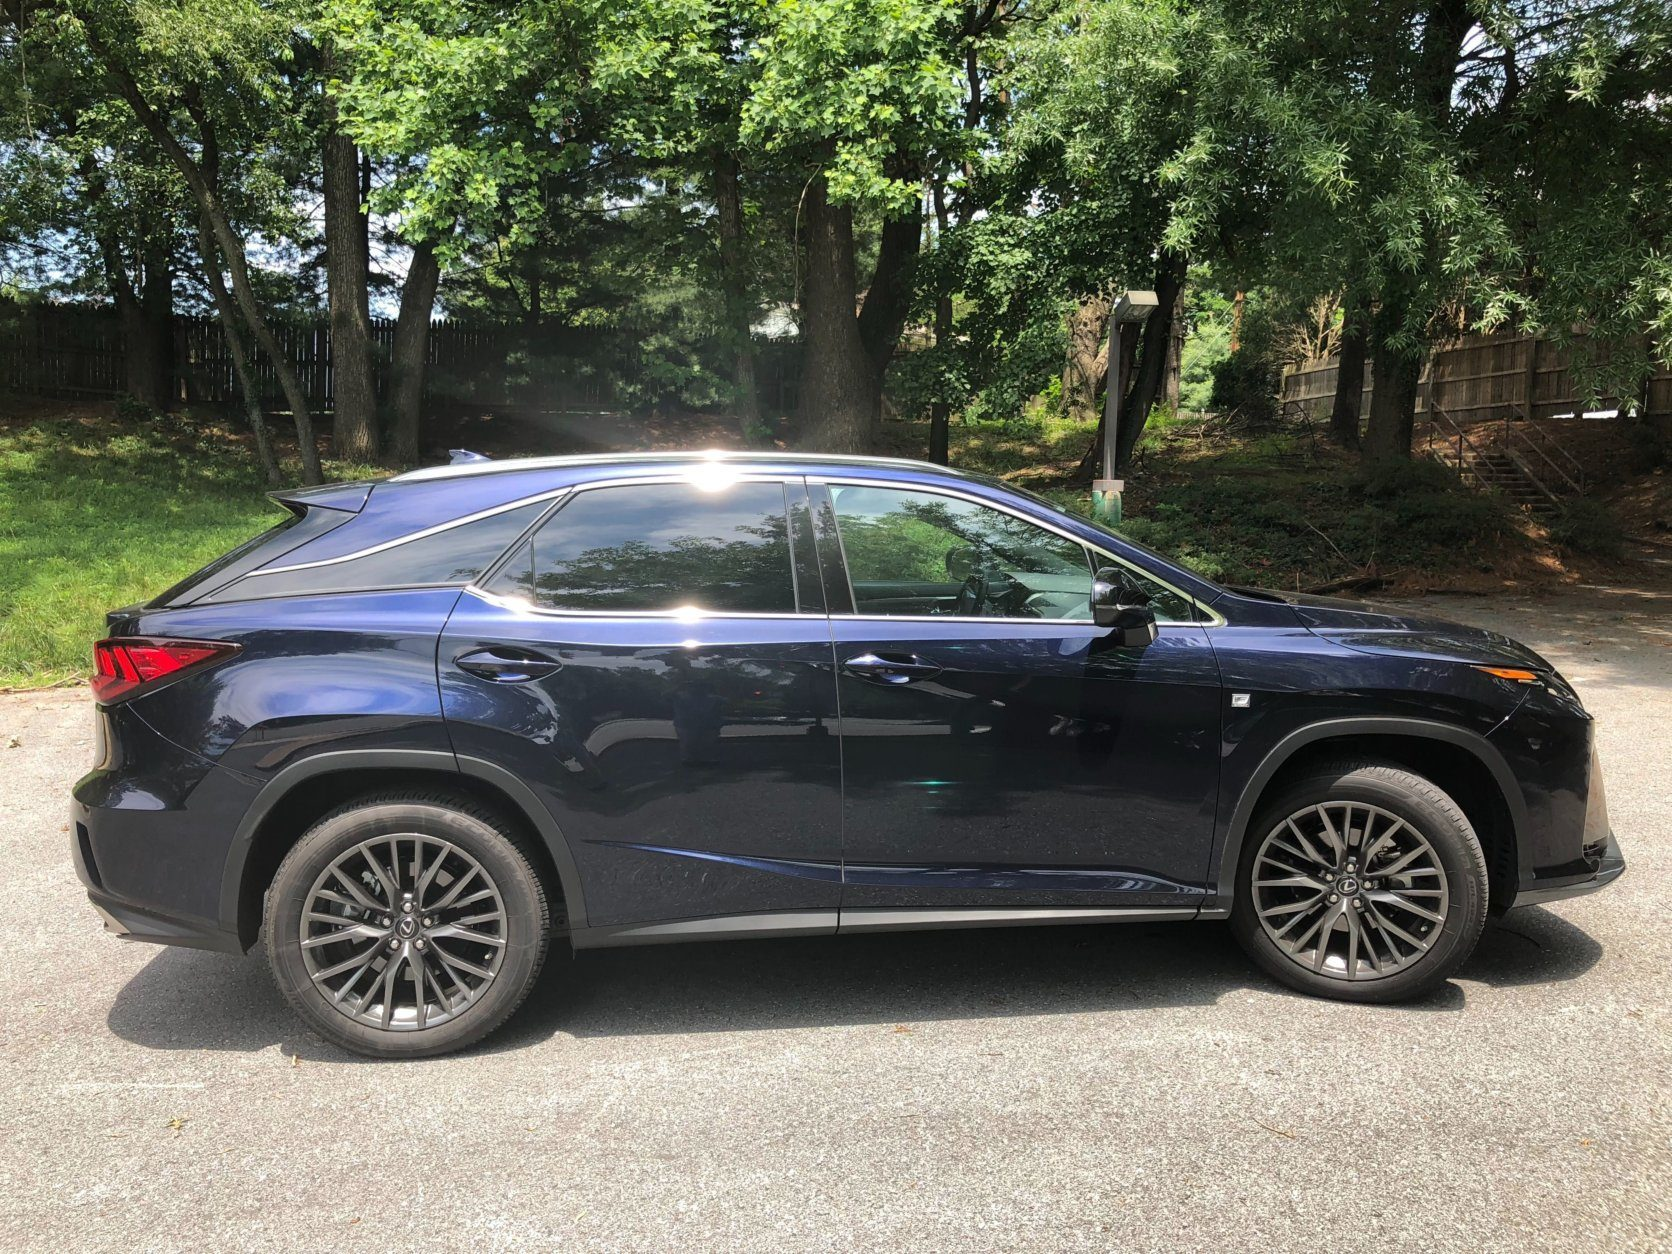 <p>The smaller RX 350 is geared to tighter back roads while the RX 350L shows its extra weight in tighter turns. There is a bit of firmness in the suspension so bigger bumps are noticed at lower speeds.</p> <p>On the highway, the RX350 is one quiet cruiser. The eight speed automatic is smooth but it tries to quickly shift to higher gear for better fuel economy.</p> <p>Both RX models came with AWD and the smaller RX 350 scored 22.4 mpg and the larger RX 350L was 20.4 mpg. Neither is at top-of-the-class for MPG but both were close to their sticker estimate.</p>